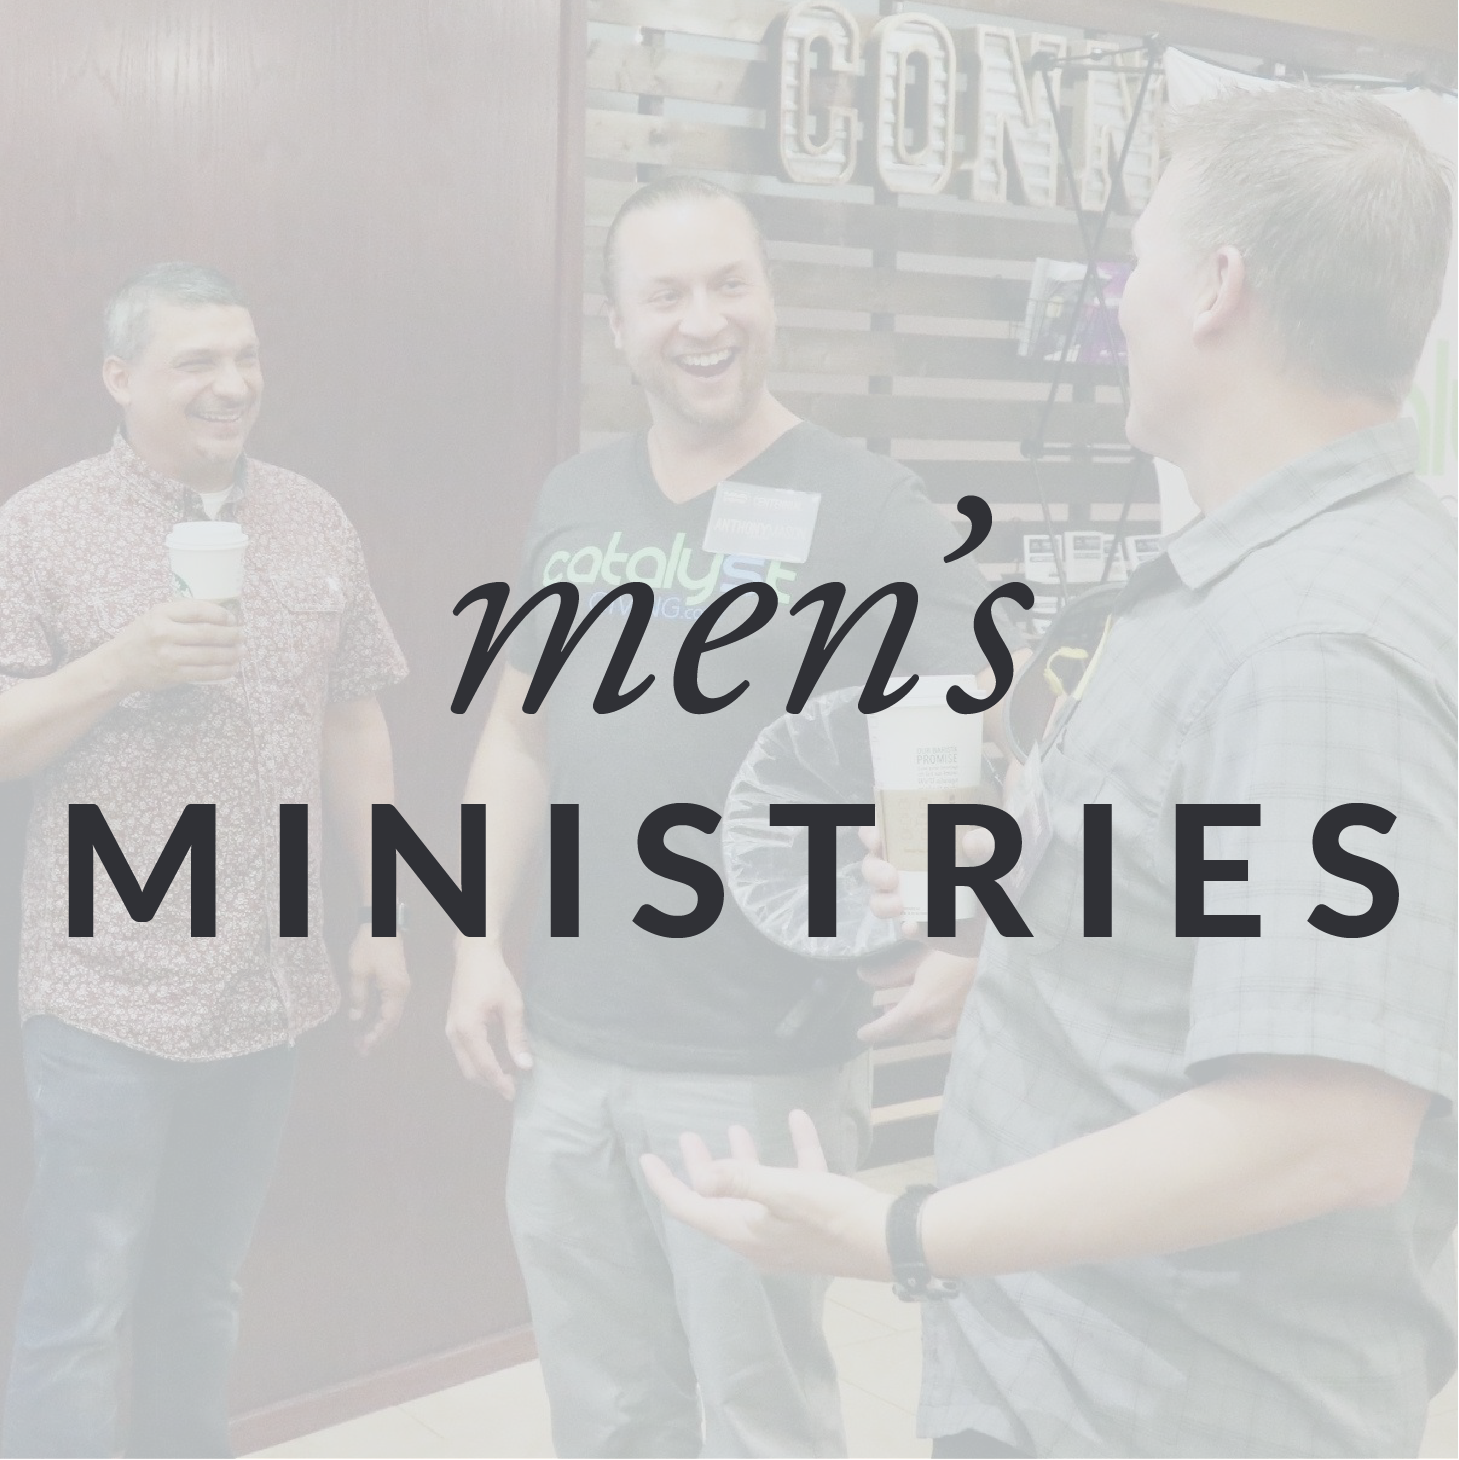 ministries-05.png